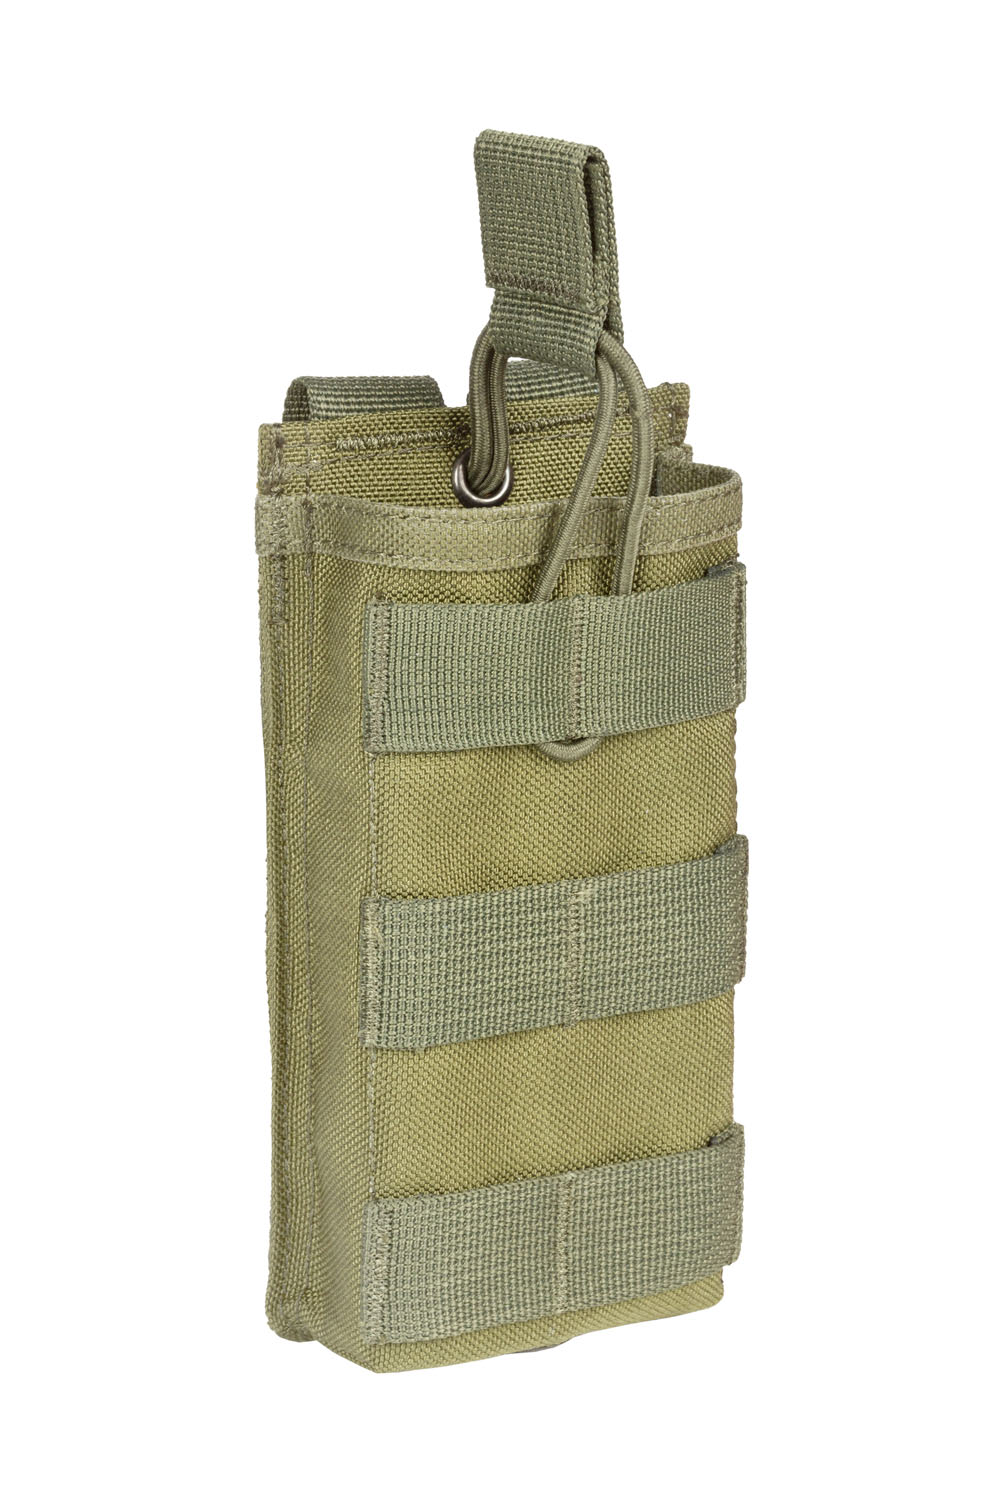 Open-top AK/AR-15 magazine pouch